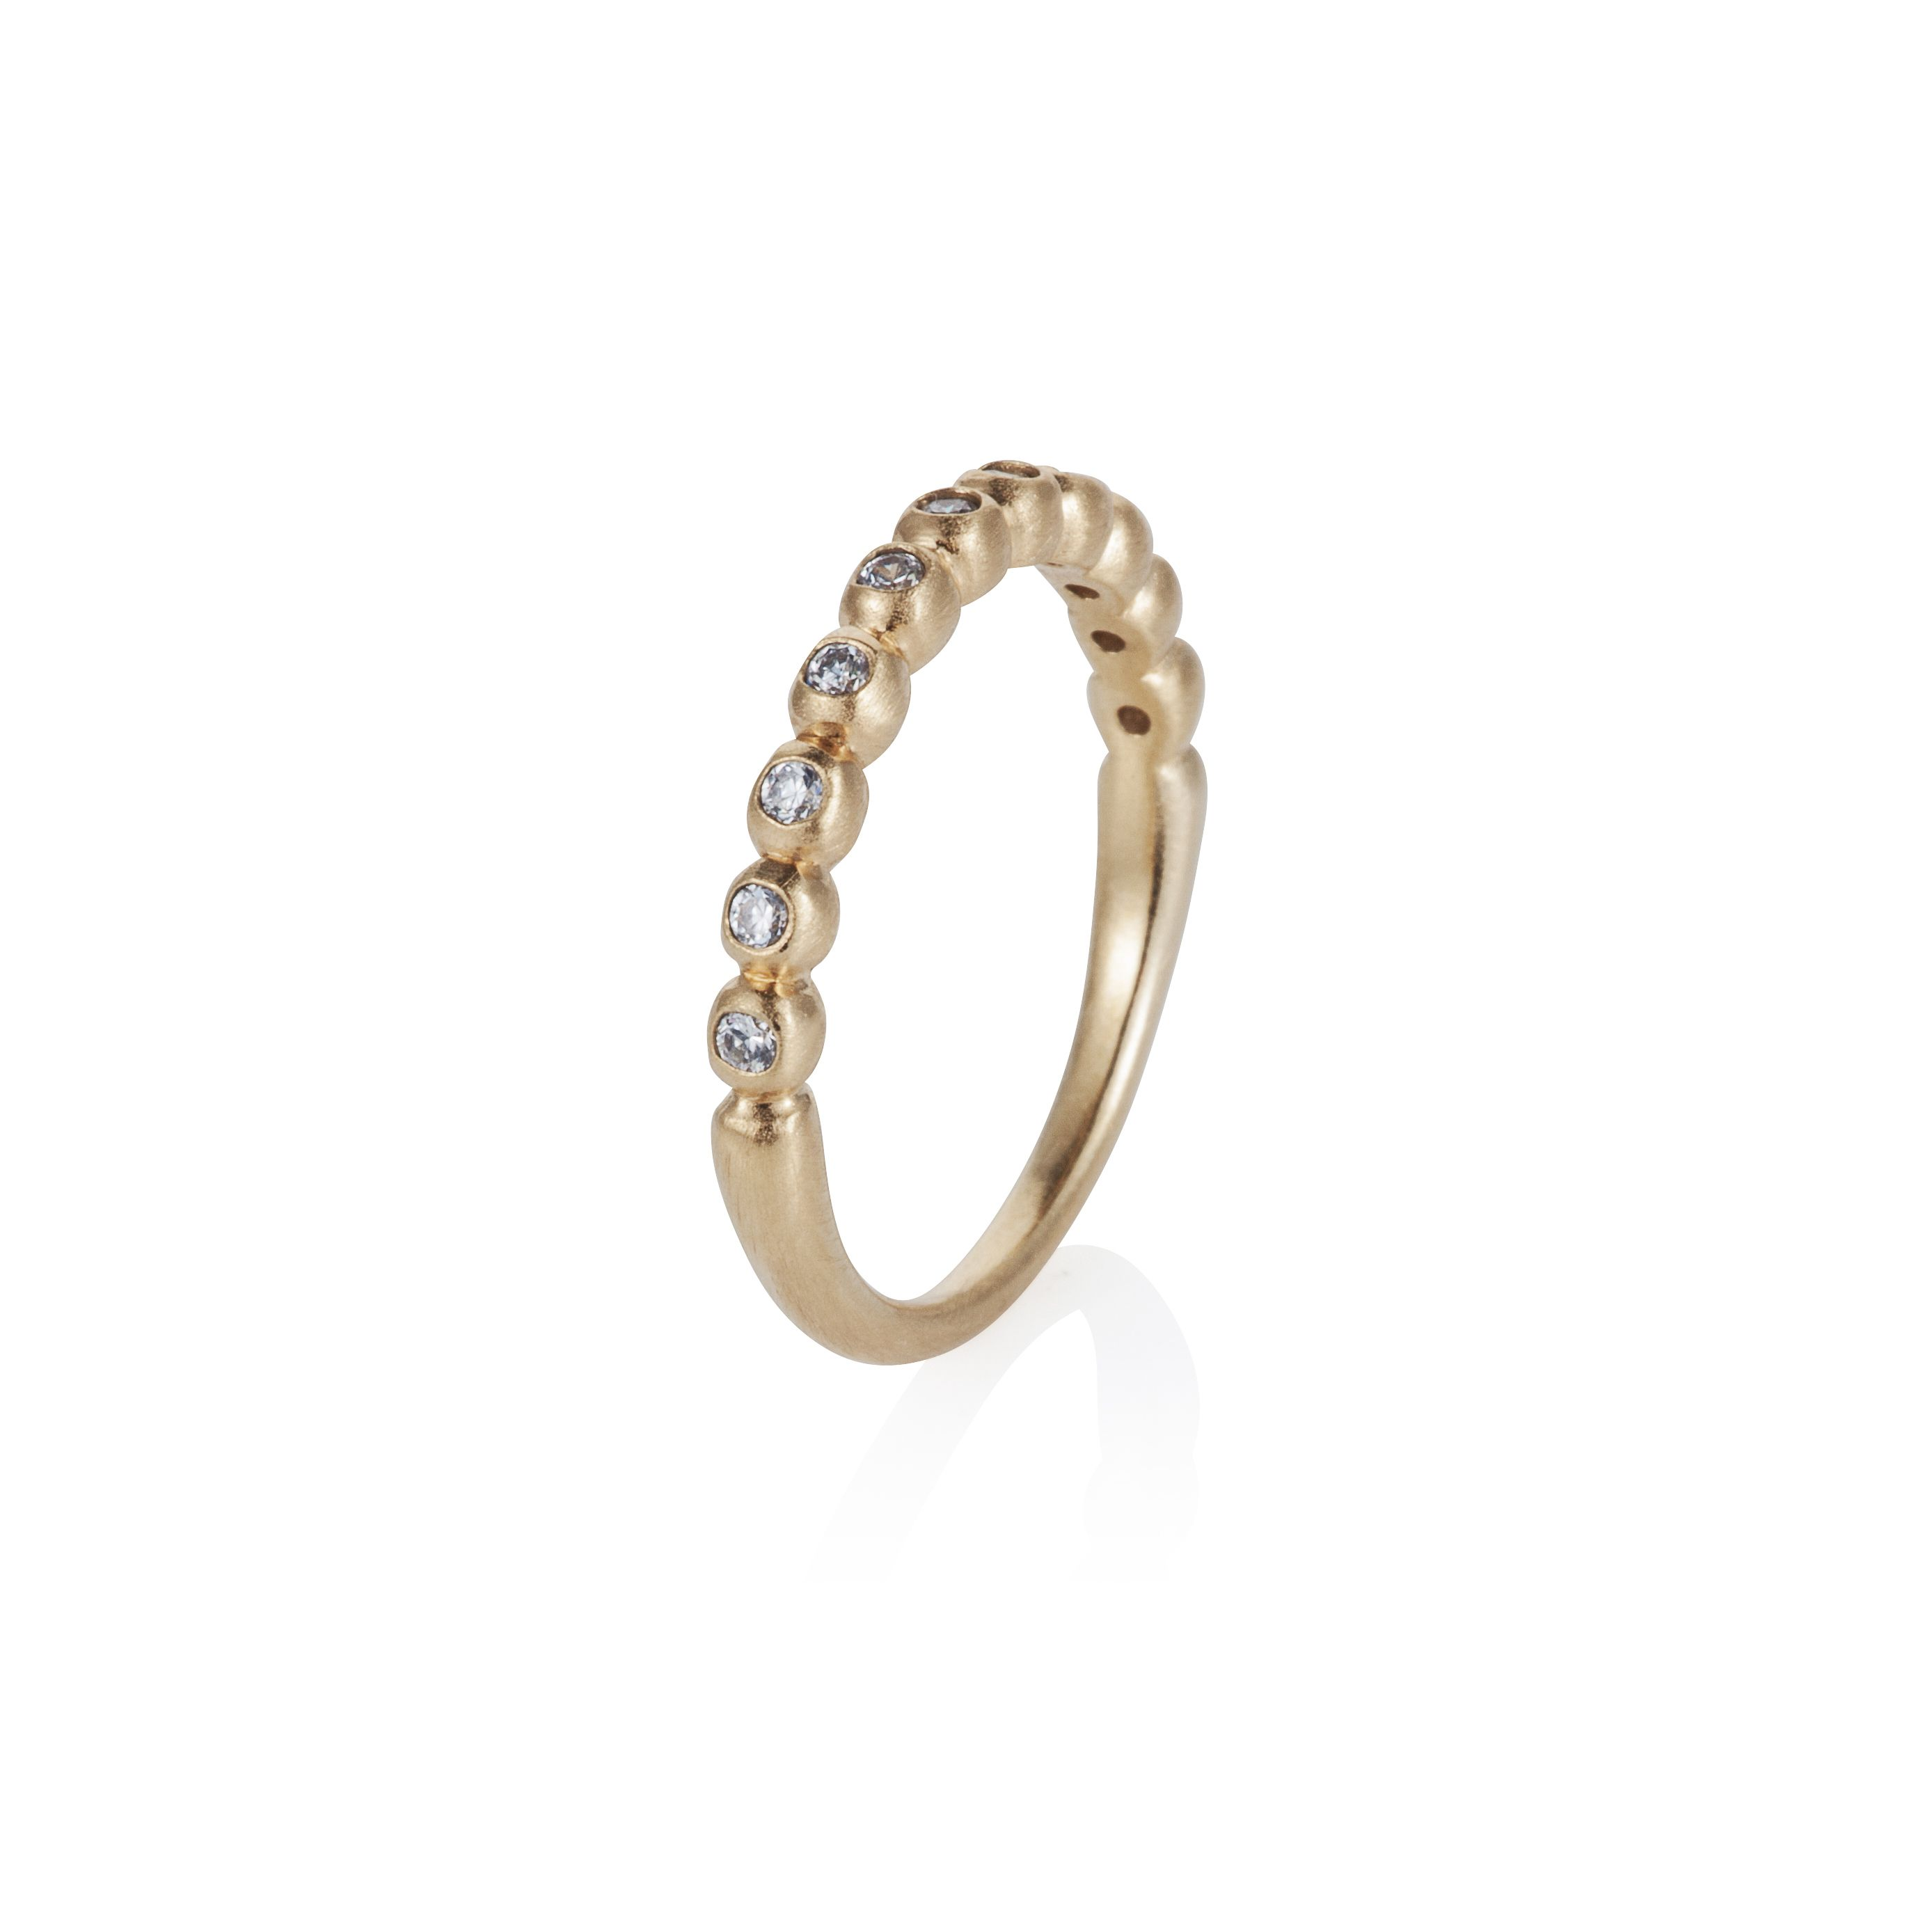 18ct gold plated sterling silver stacker ring